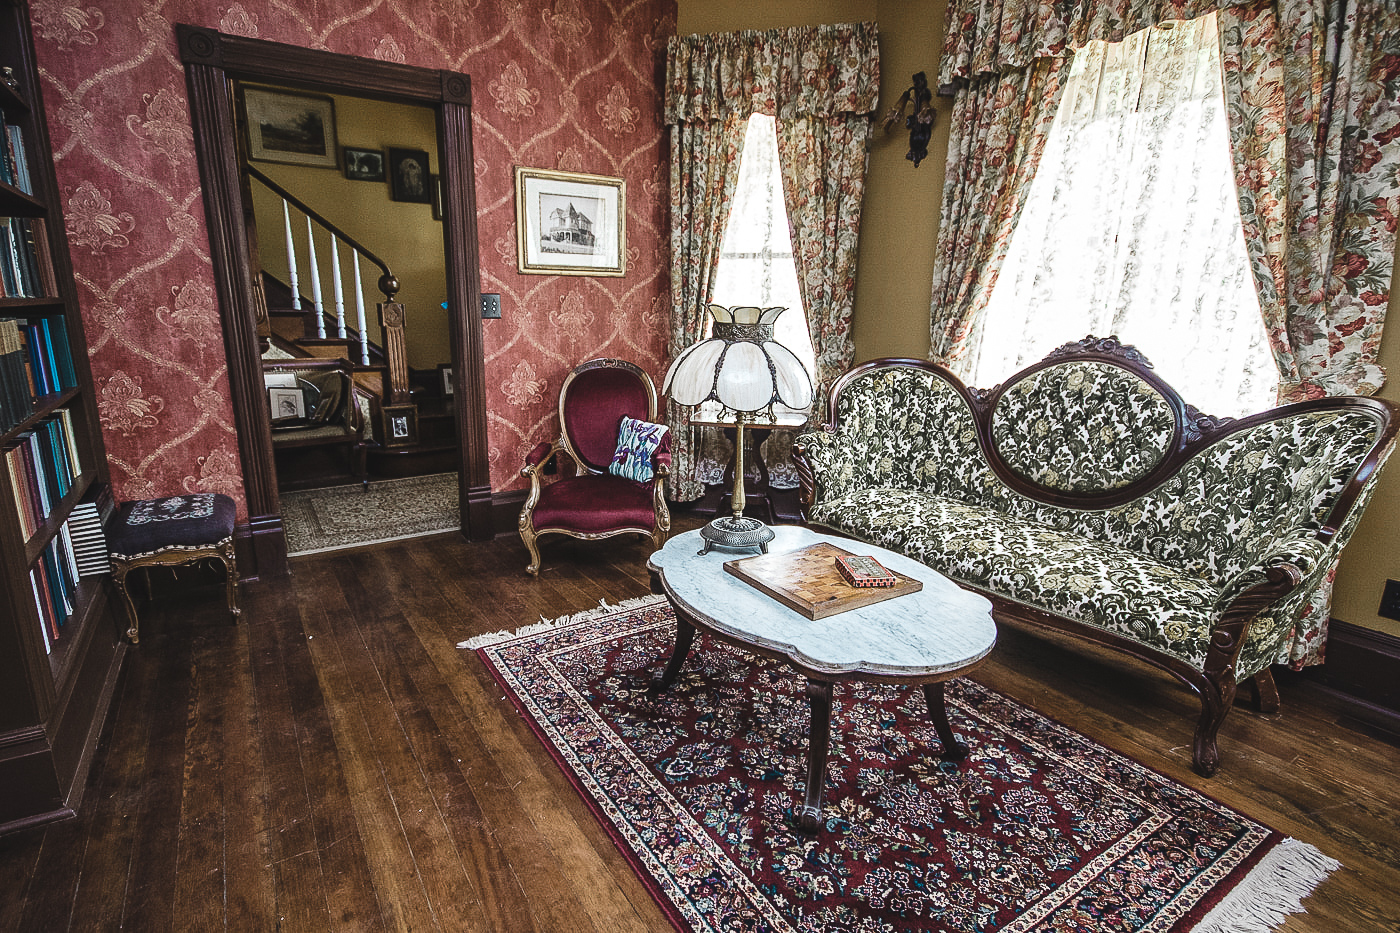 If you're in the market for a little weekend getaway and are looking for cute lodging, you HAVE to try the Marie Bed and Breakfast in West Olympia. The cutest little house was built in 1892 and was later turned into a B&B in the summer of 2018. Lodging is comprised of two suites in the main house and two cabins across the courtyard. Each room boasts vintage decorum, and is so peaceful. Make sure you grab breakfast in the morning, James is a professional Chef and will whip you up something...FABULOUS. (Image courtesy of The Marie Bed and Breakfast).